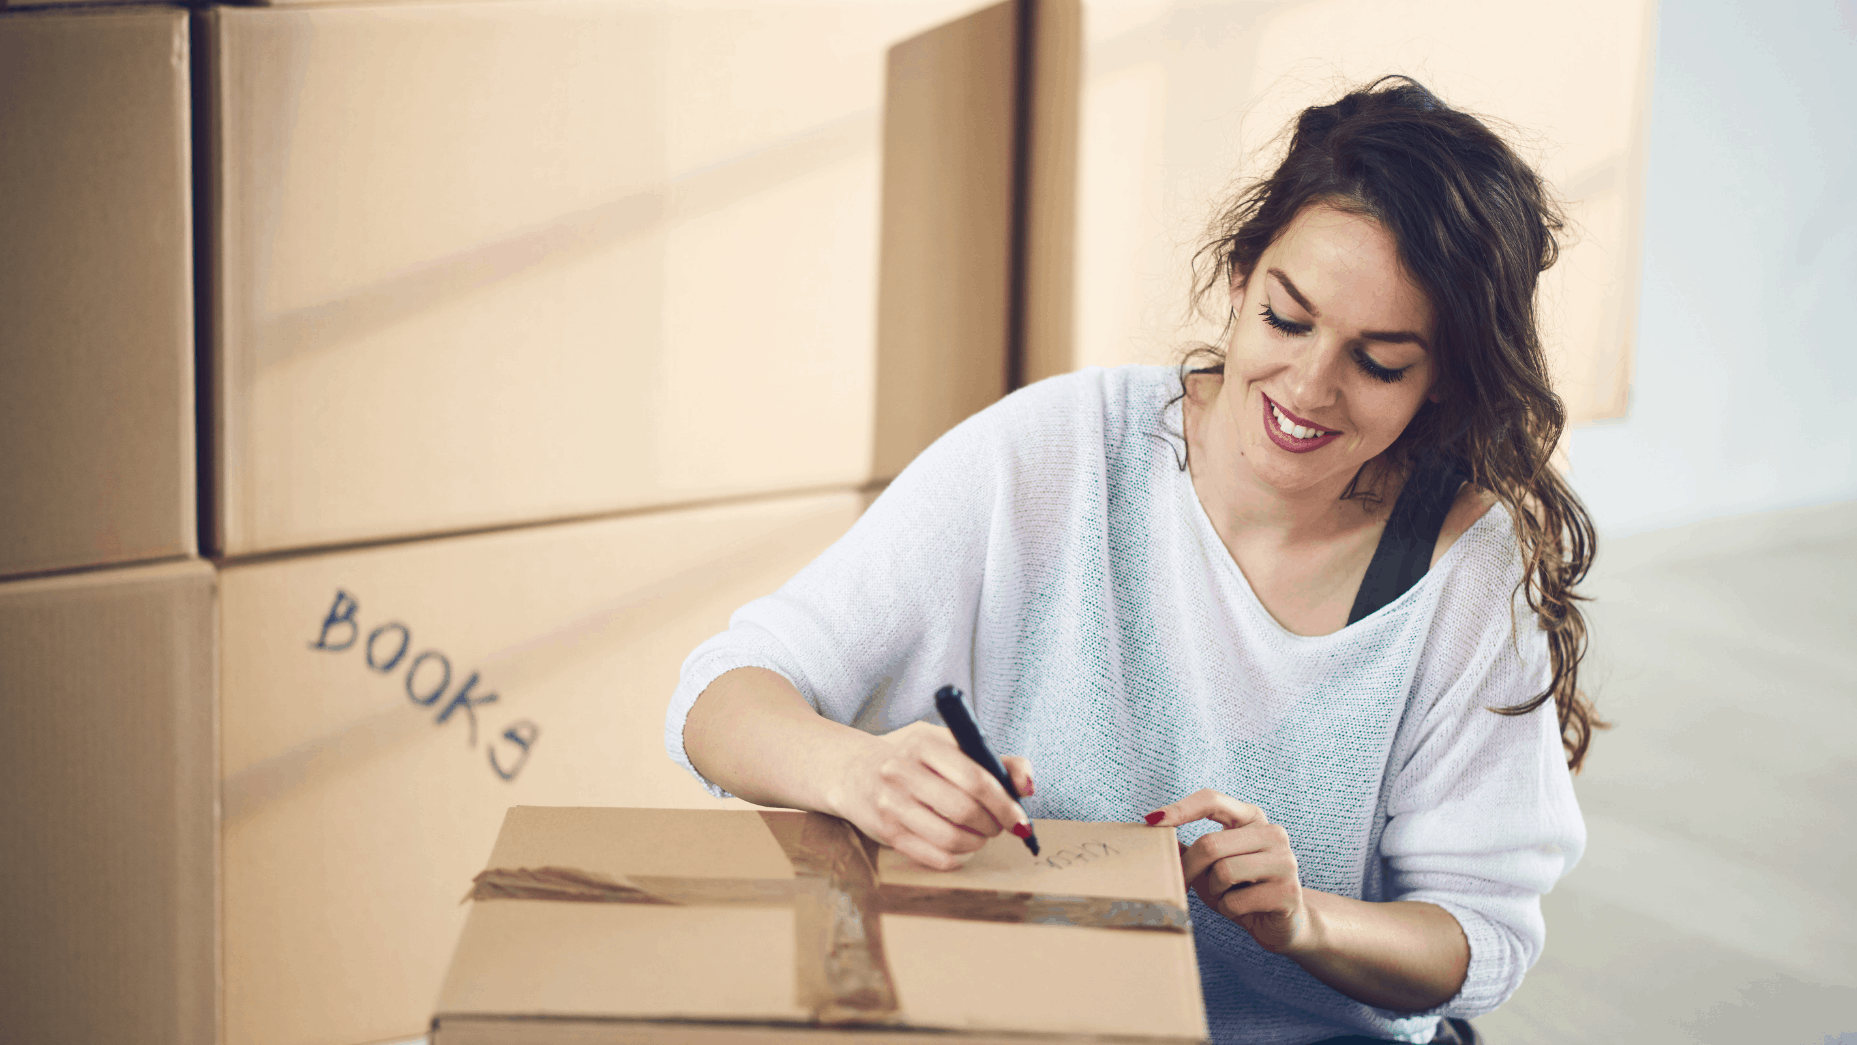 How To Make Packing And Moving Less Stressful